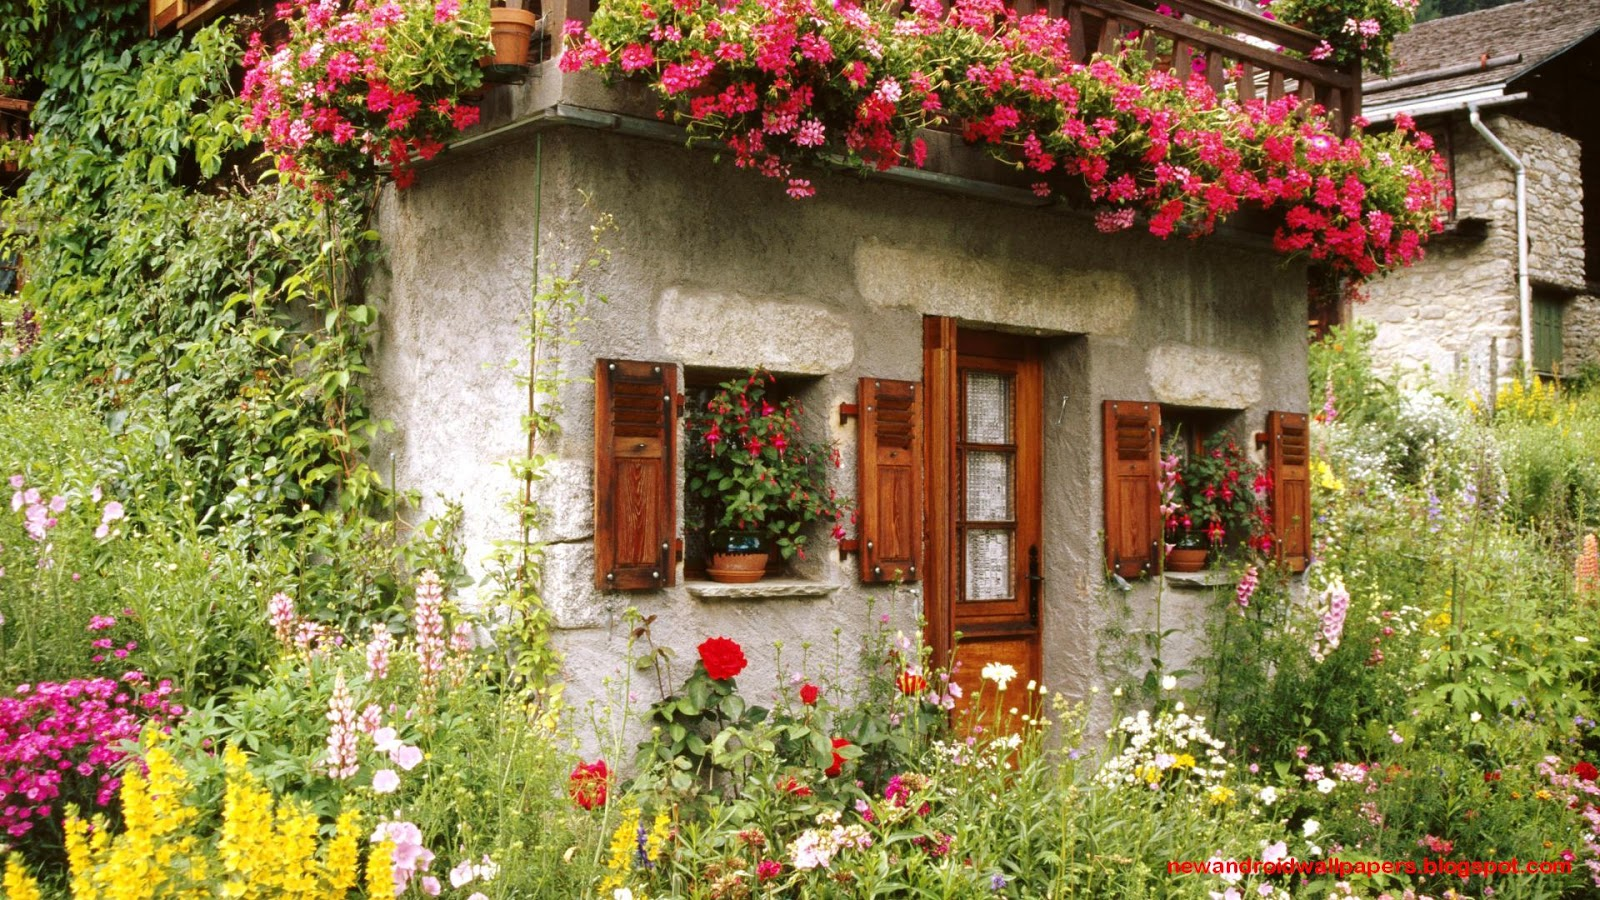 Free Download Beautiful Collection Of Home Garden Wallpapers Download For 1600x900 For Your Desktop Mobile Tablet Explore 49 Wallpaper Of Beautiful Flower Gardens Flower Garden Wallpapers For Desktop Hd